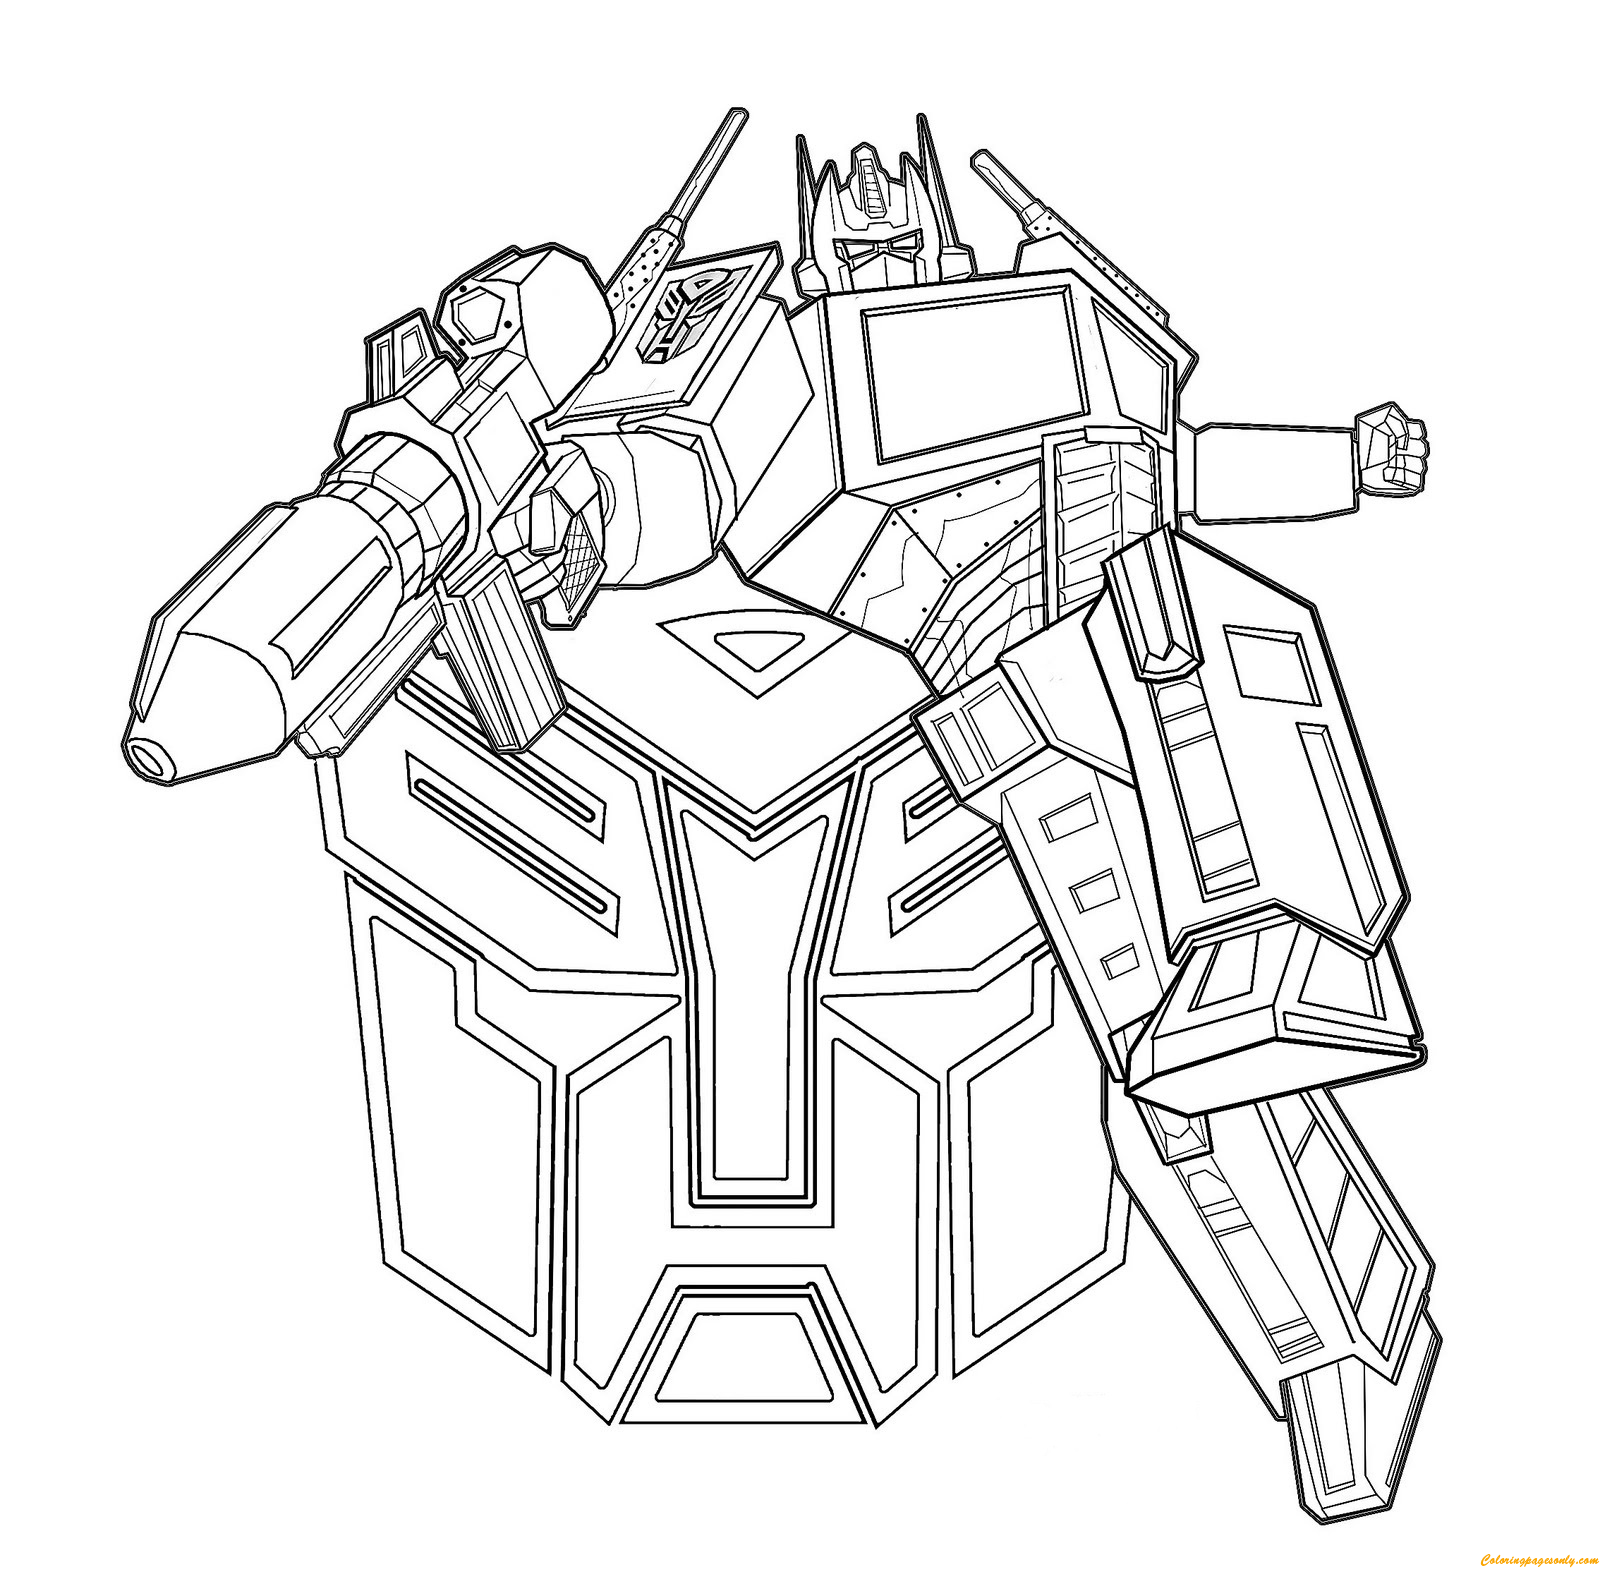 Transformers Optimus Prime Coloring Page Free Coloring Pages Online